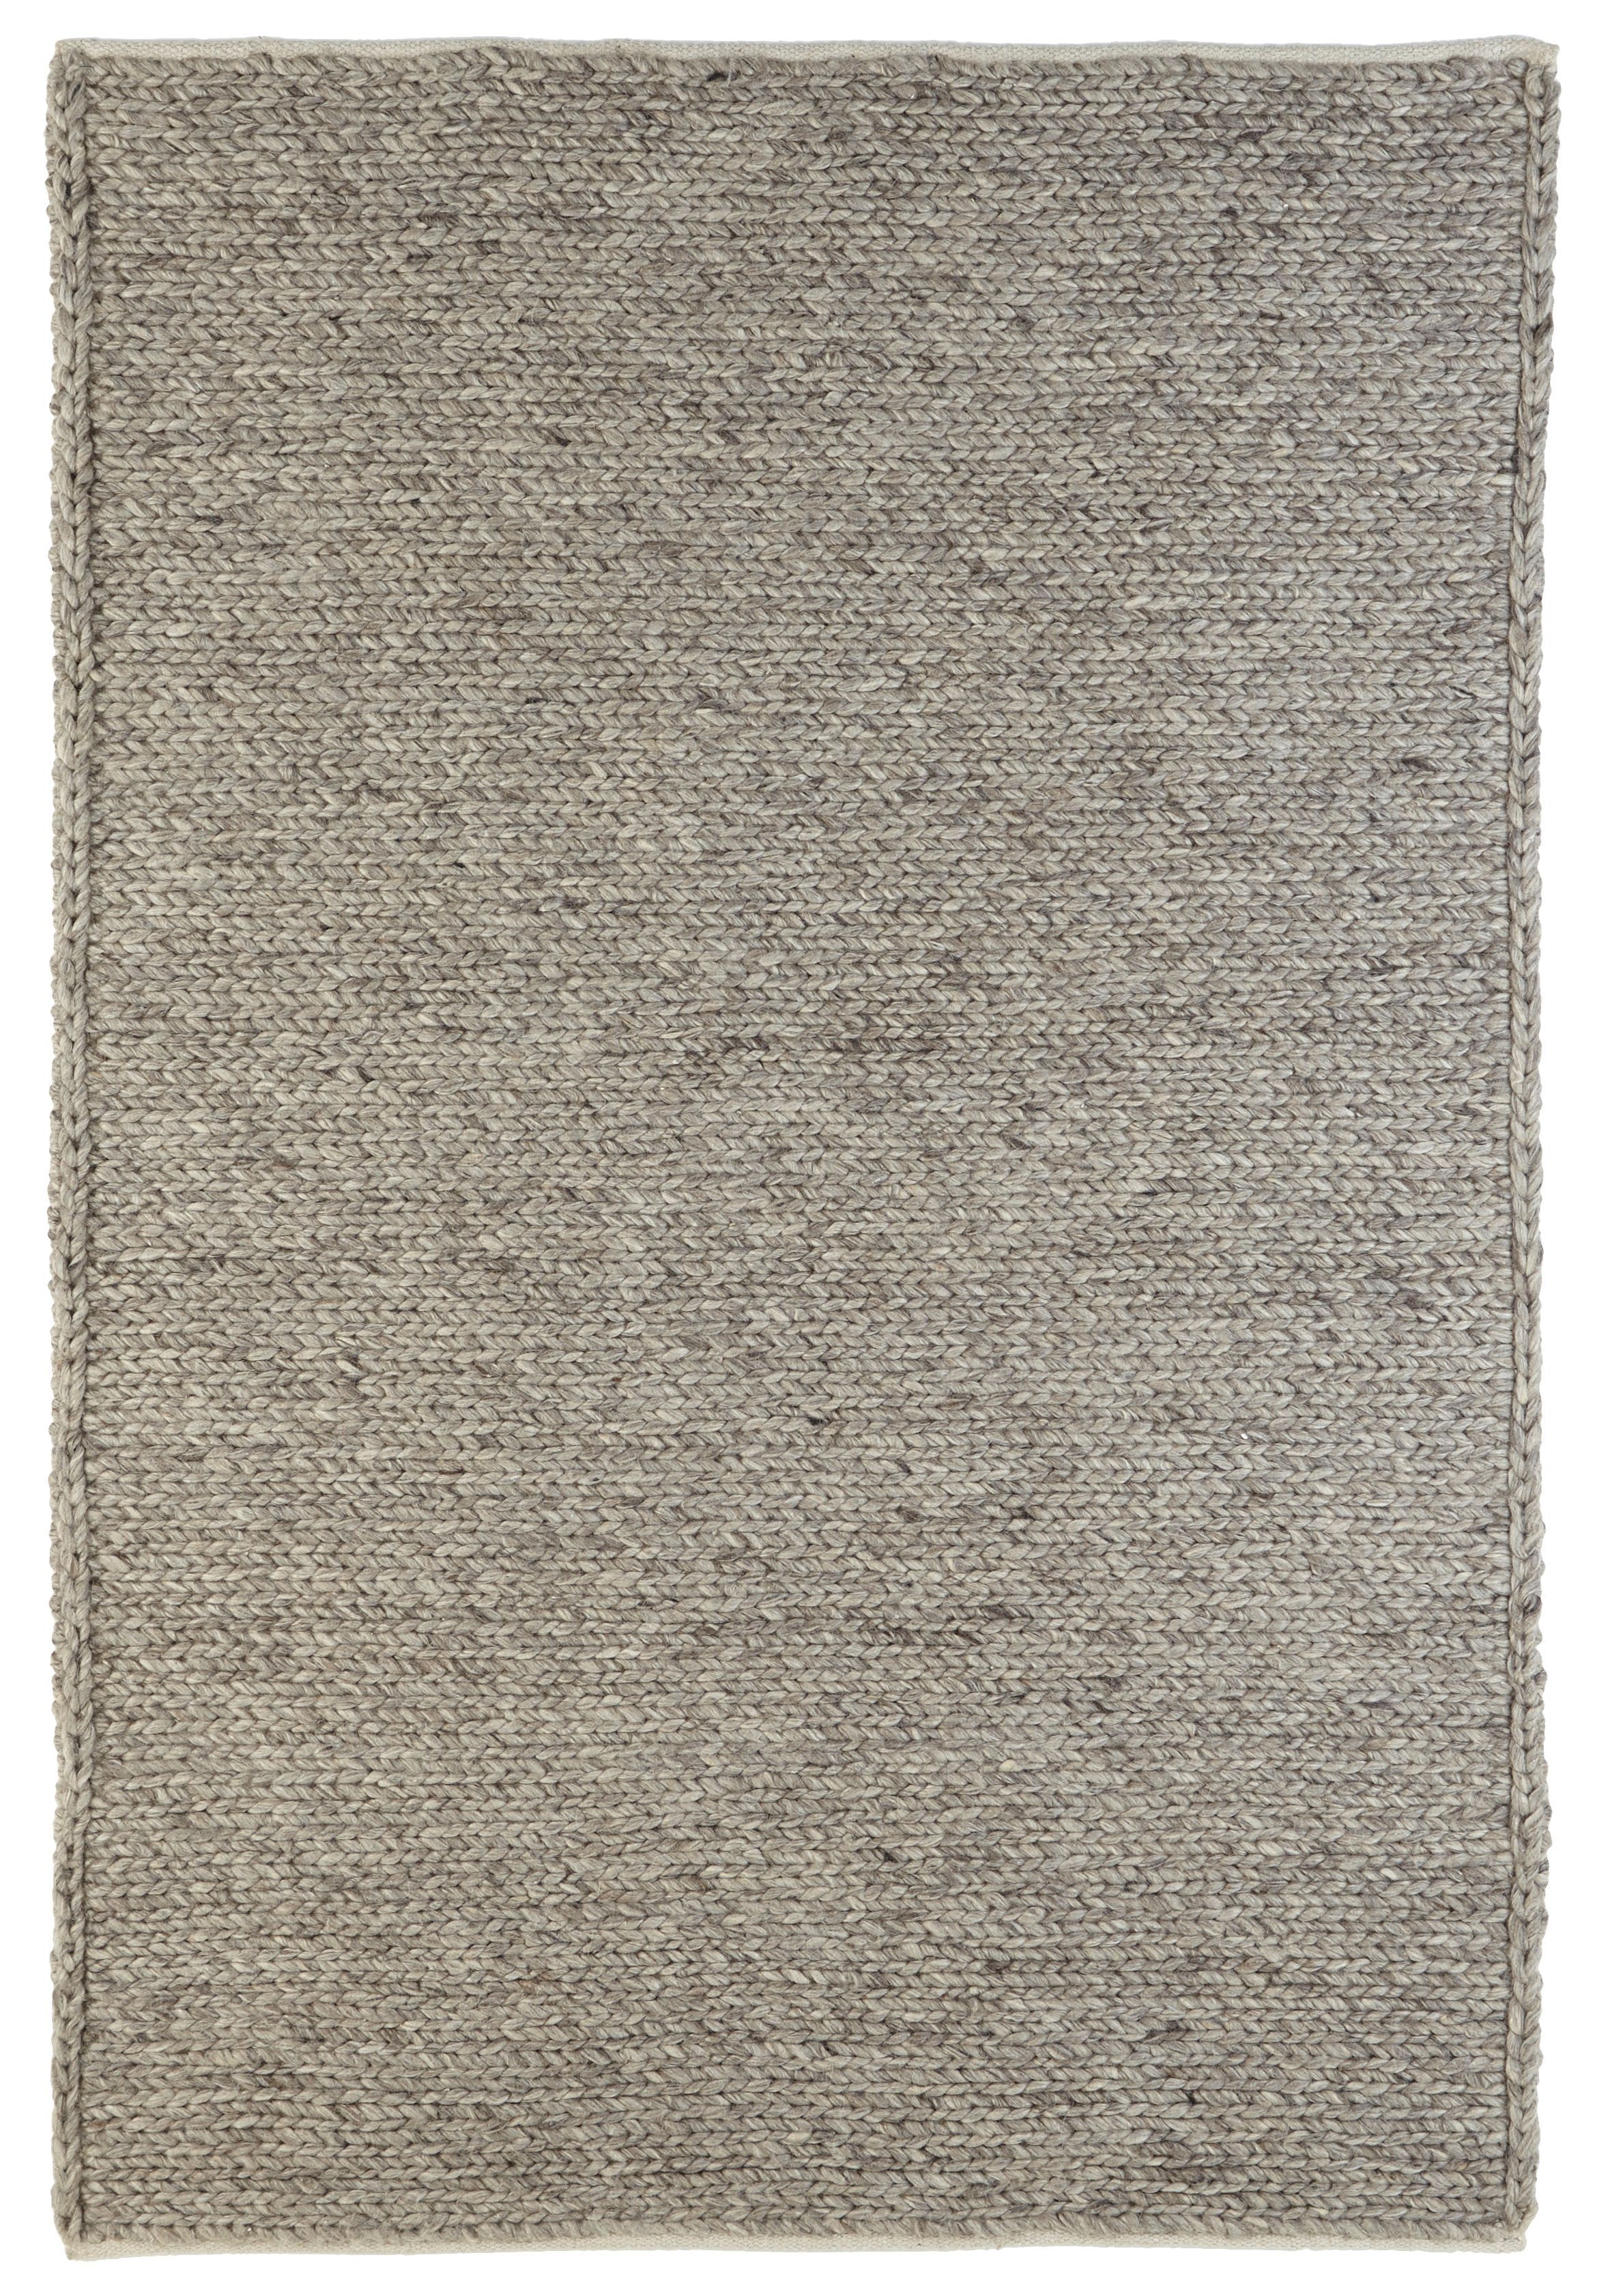 Colours Claudine Grey Thick Knit Rug L 2 3m W 1 6 M